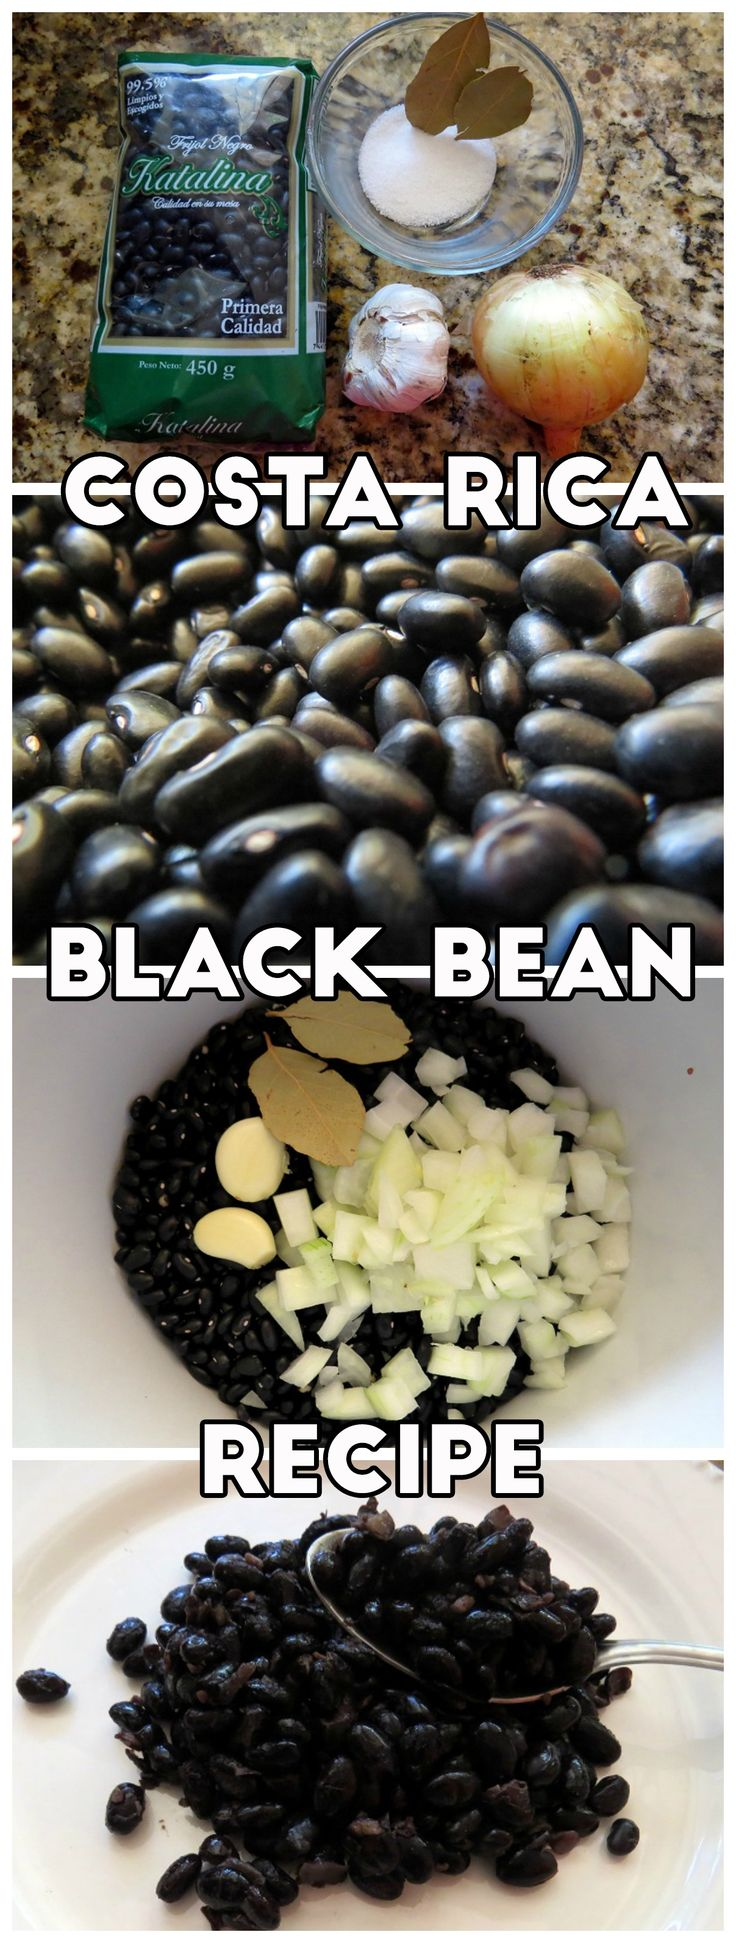 Slow cooker black beans recipe. Beans are a staple food in Costa Rica and now you can learn how to make them with Costa Rican flavors!